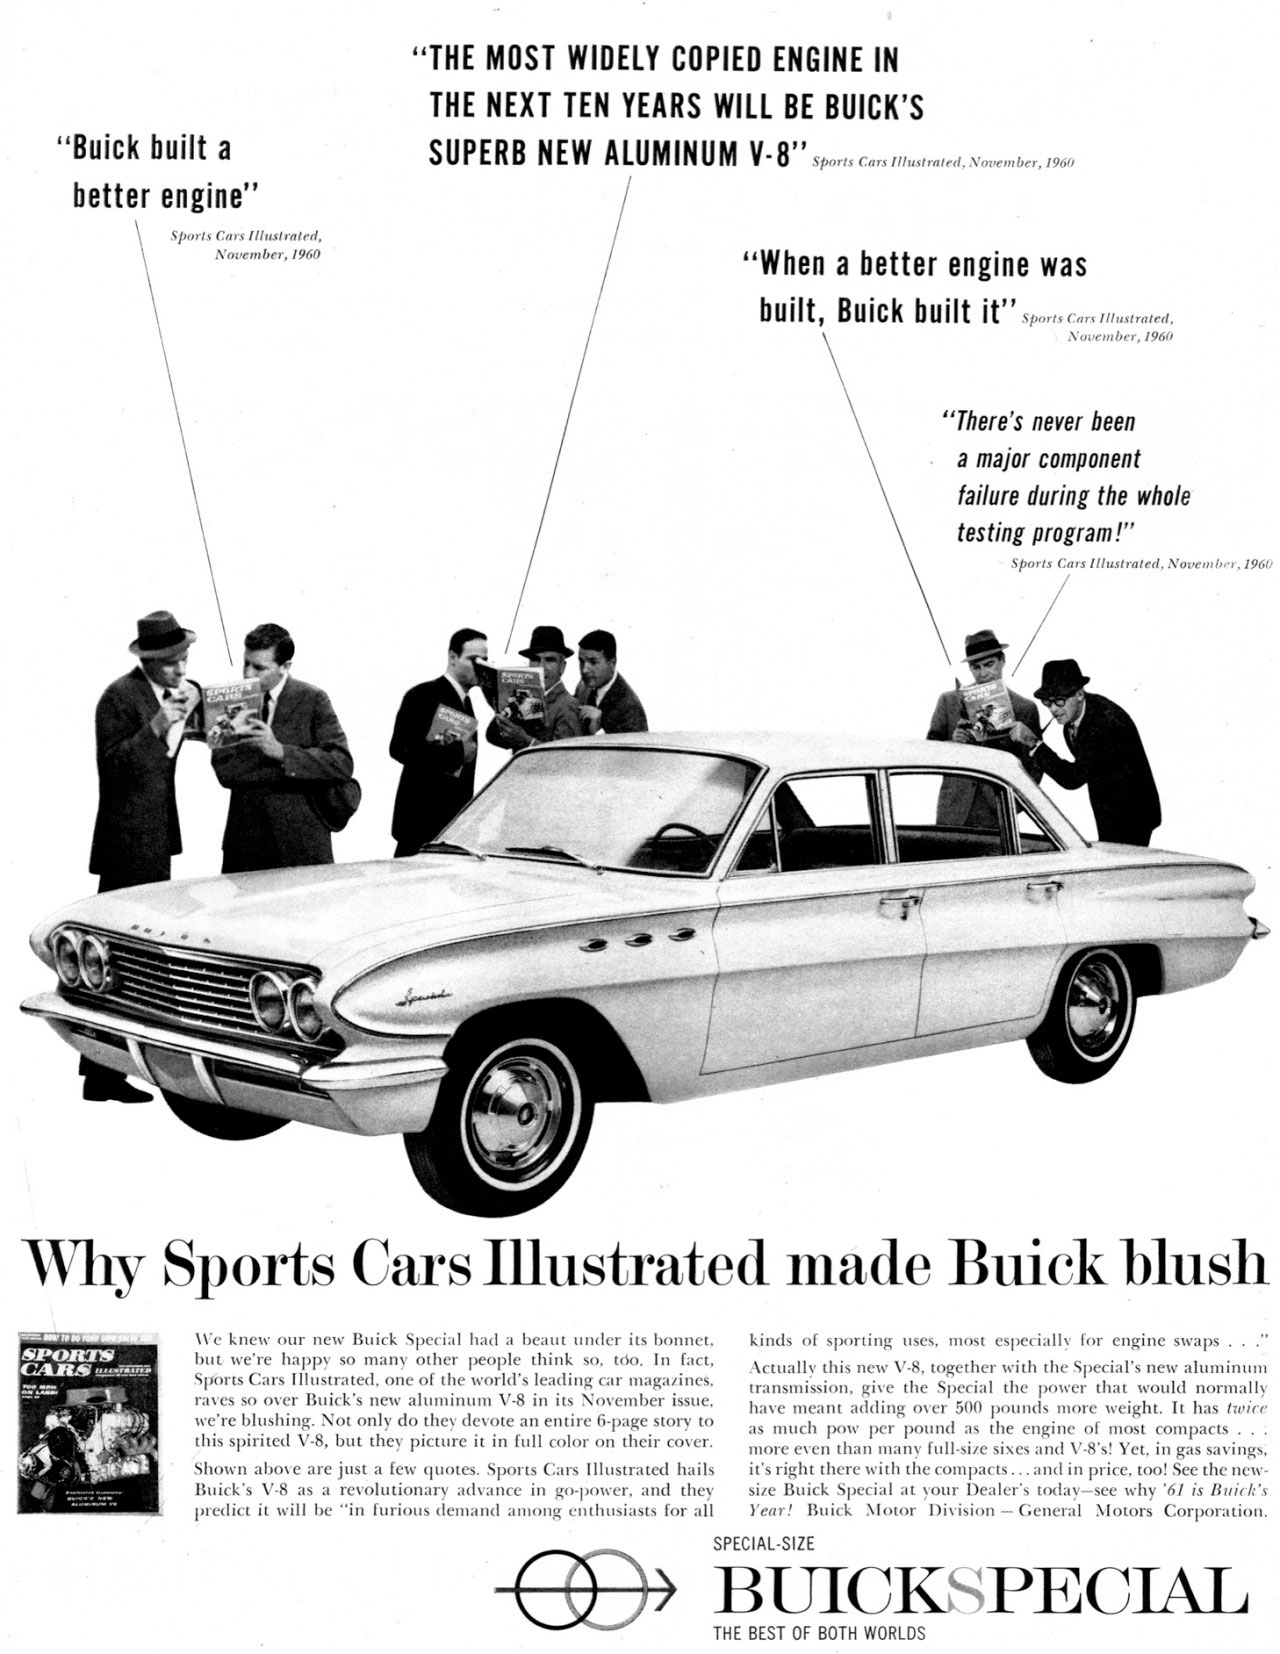 ''Buick built a better engine''  Sports CO37 111w1rated, Novembe ,1960  ''THE MOST WIDELY COPIED ENGINE IN THE NEXT TEN YEARS WILL BE BUICK'S SUPERB NEW ALUMINUM  ''When a better engine was  built, Buick built it'' Sports N00,0,10,1960  ''There's never been a major component failure during the whole testing program!''   Why Sports Cars Illustrated made Buick blush   We knew our new Buick Special had a beau t under its bonnet, but were happy so many other people think so, tdo. In fact, Sports Cars Illustrated, one of the world's leading car magazines, raves so over Buick's new aluminum V'S in its November issue, were blushing. Not only do they devote an entire 6-page story to this spirited V-8, but they picture it in full color on their cover. Shown above are just a few quotes. Sports Cars Illustrated hails Buick's V-8 as a revolutionary advance in go-power, and they predict it will be ''in furious demand among enthusiasts for all  kinds of sporting uses, most especially for engine swaps . . Actually this new V-8, together with the Special's new aluminum transmission, give the Special the power that would normally have meant adding over 500 pounds more weight. It has twice as much pow per pound as the engine of most compacts .. : more even than many full-size sines and V-8's! Yet, in gas savings; it's right there with the compacts ... and in price, tool See the new-s,. Buick Special at your Dealer's today—see why '61 is Buick's Year, Buick Motor Division — General Motors Corporation.  SPECIAL-SIZE  BUICKSPECIAL  THE BEST OF BOTH WORLDS